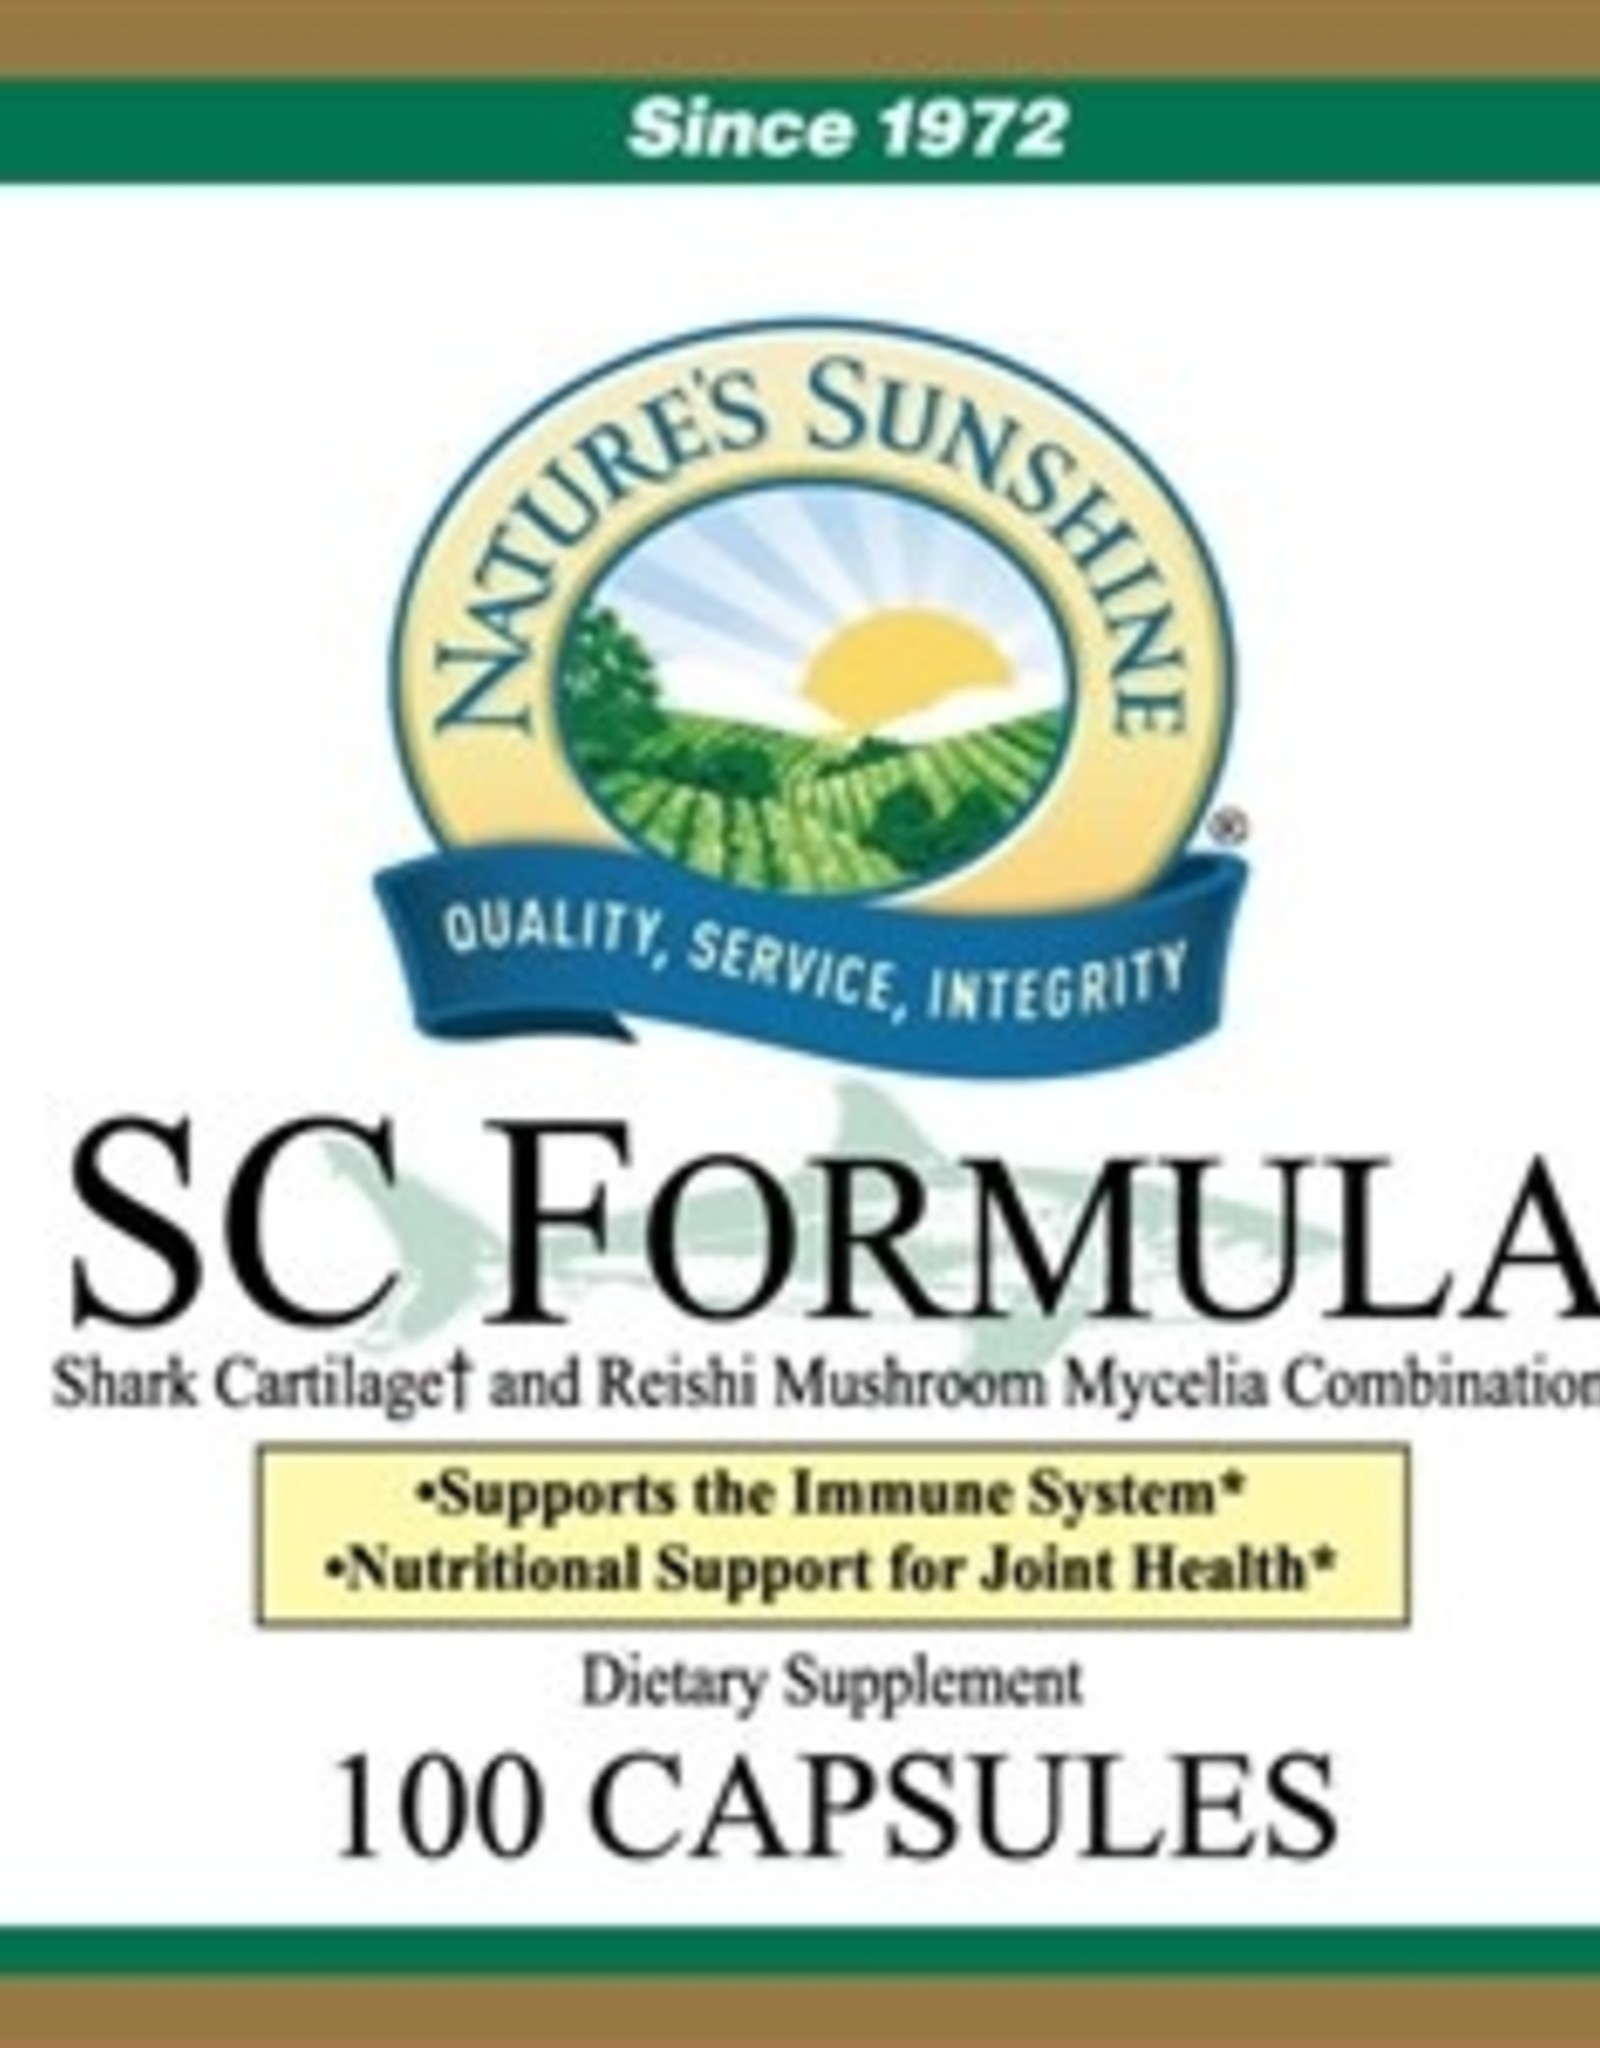 Nature's Sunshine SC Formula (Shark Cartilage) (100 caps)